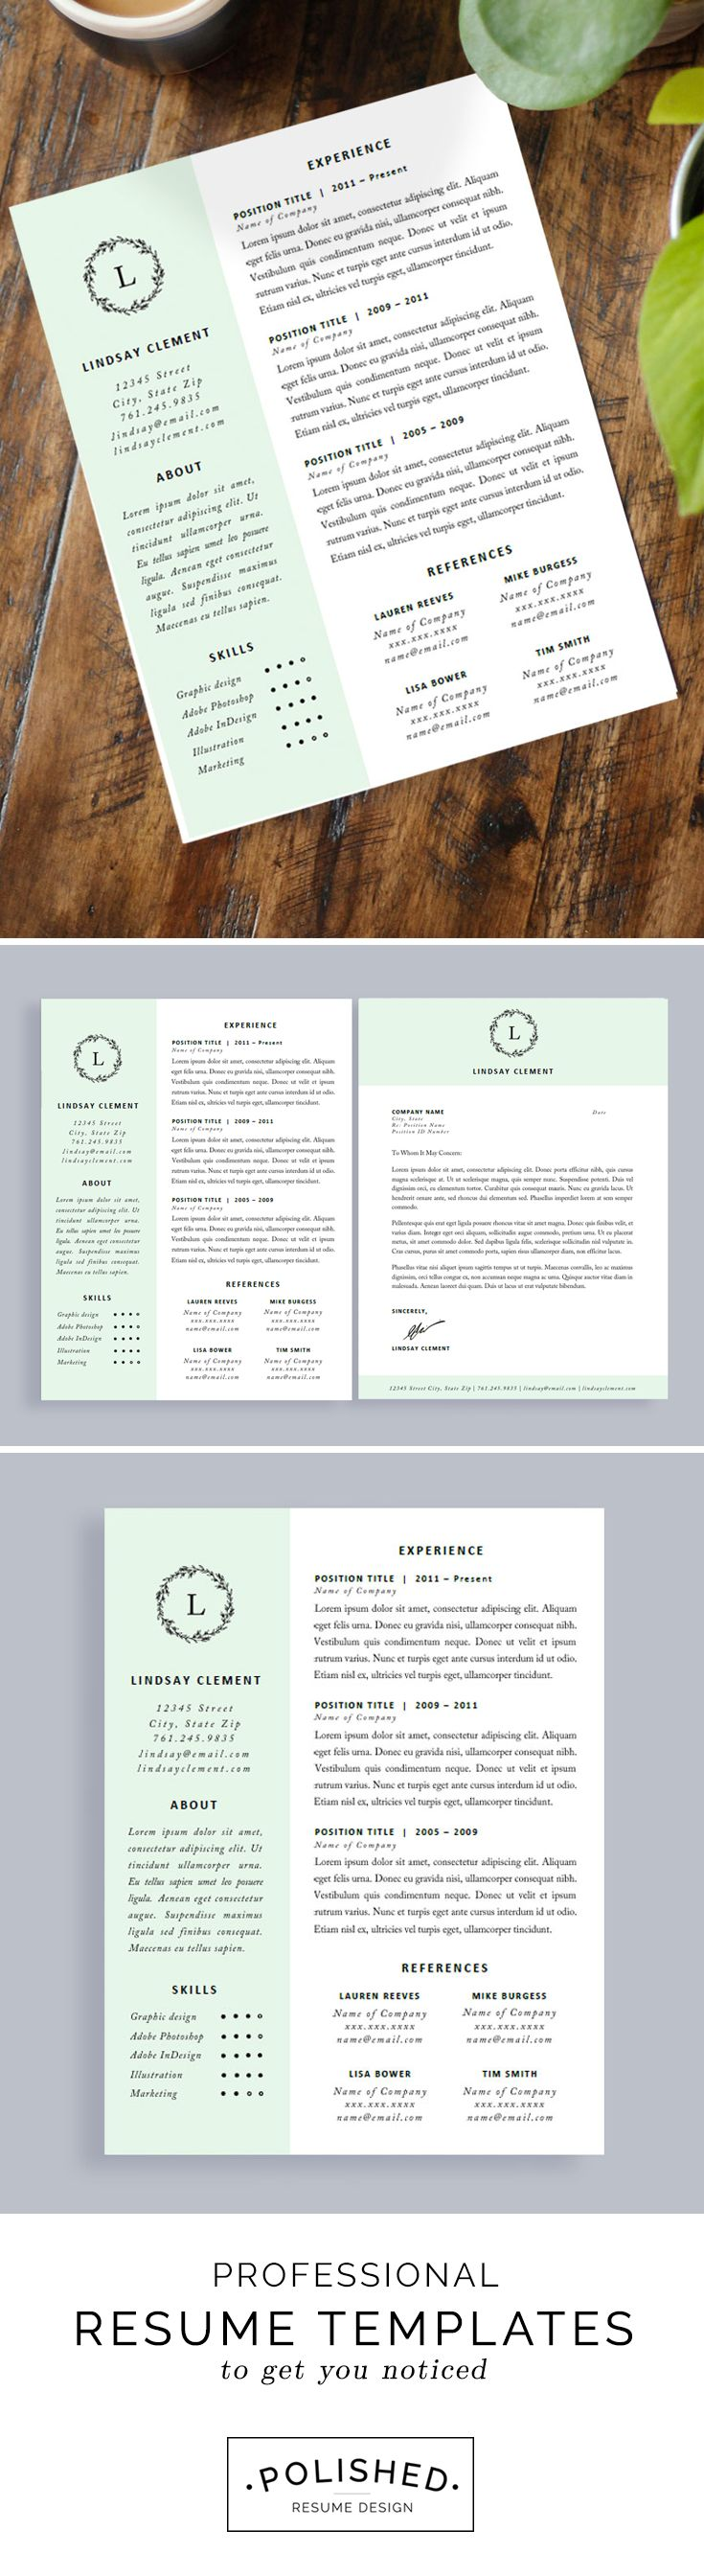 cover letter template for receptionist%0A Professional resume templates for Microsoft Word  Features   and   page  options plus a free